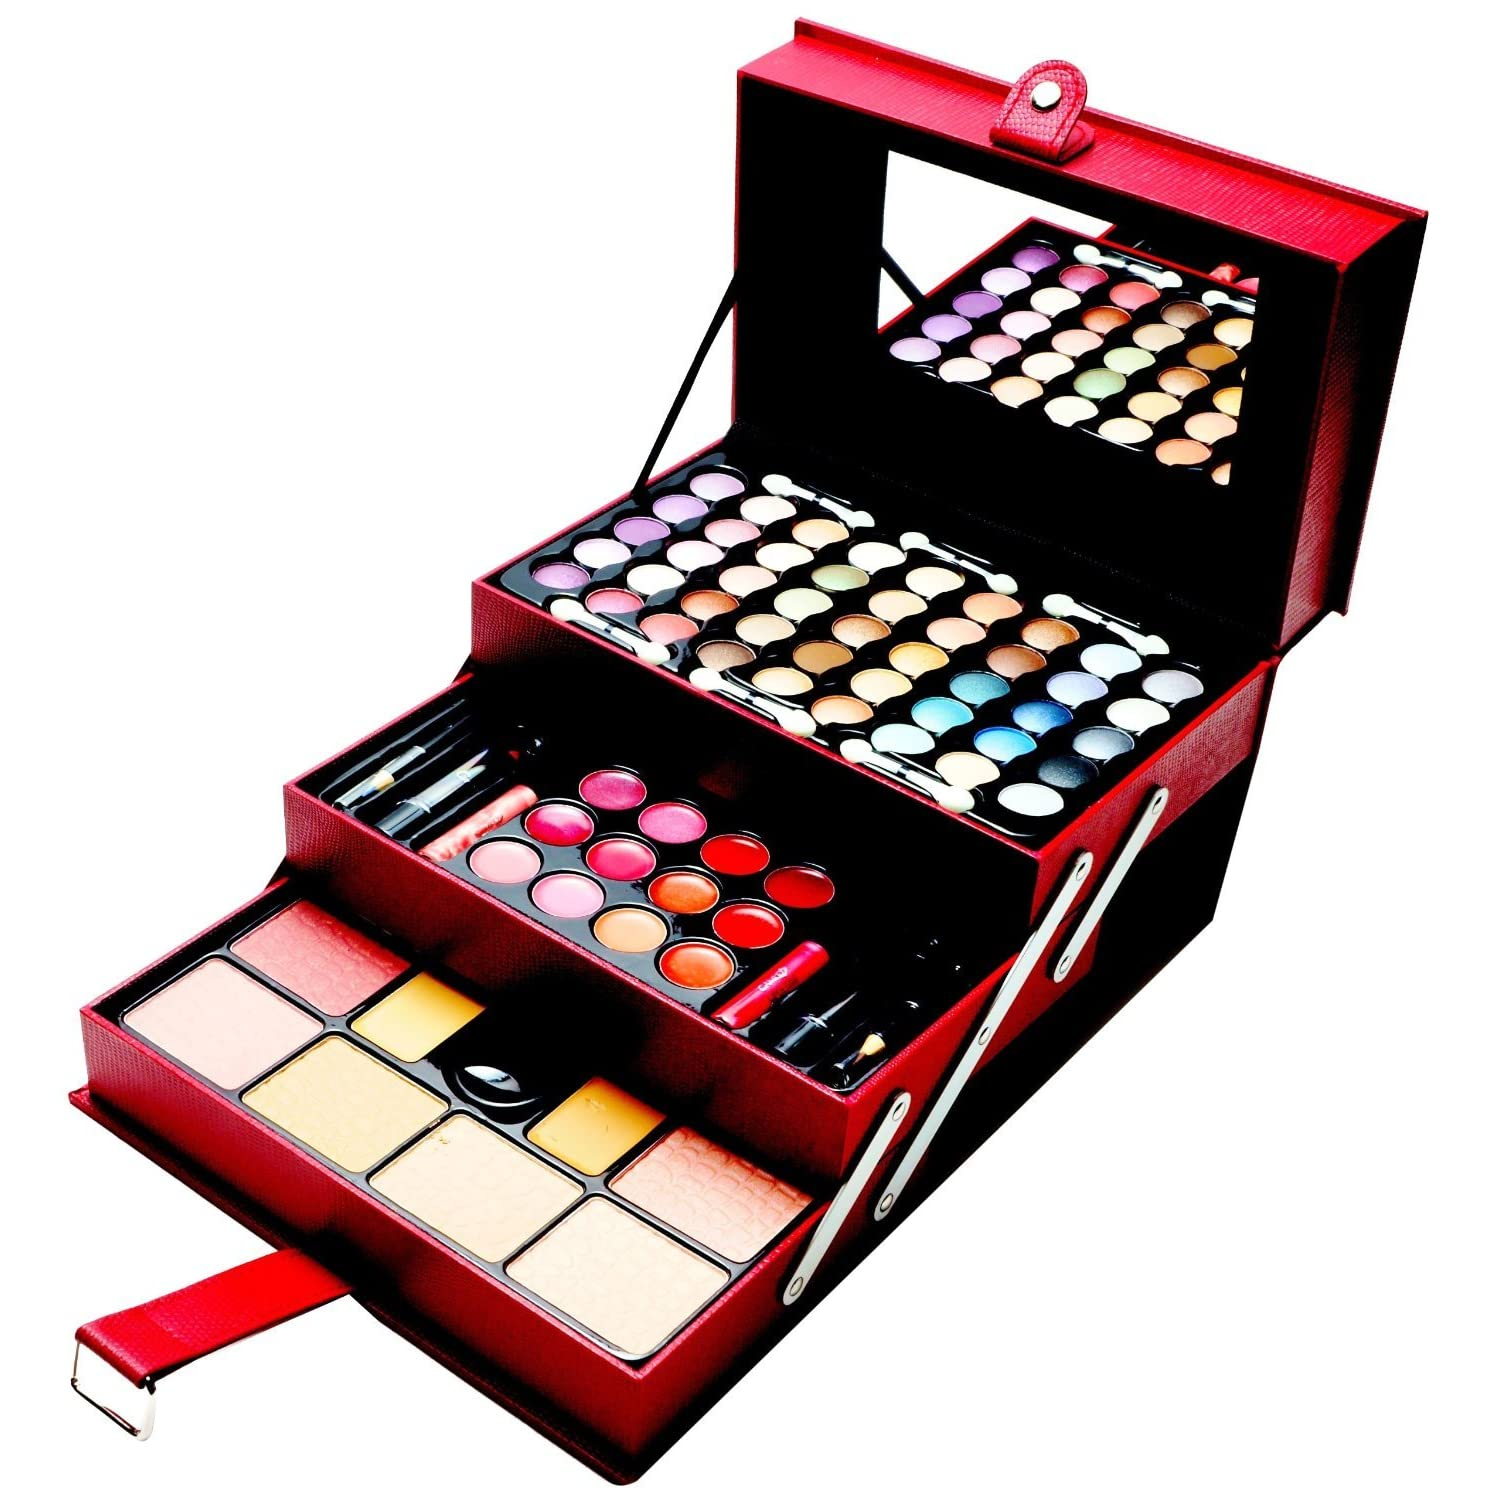 cameo all in one makeup kit (并行输入)